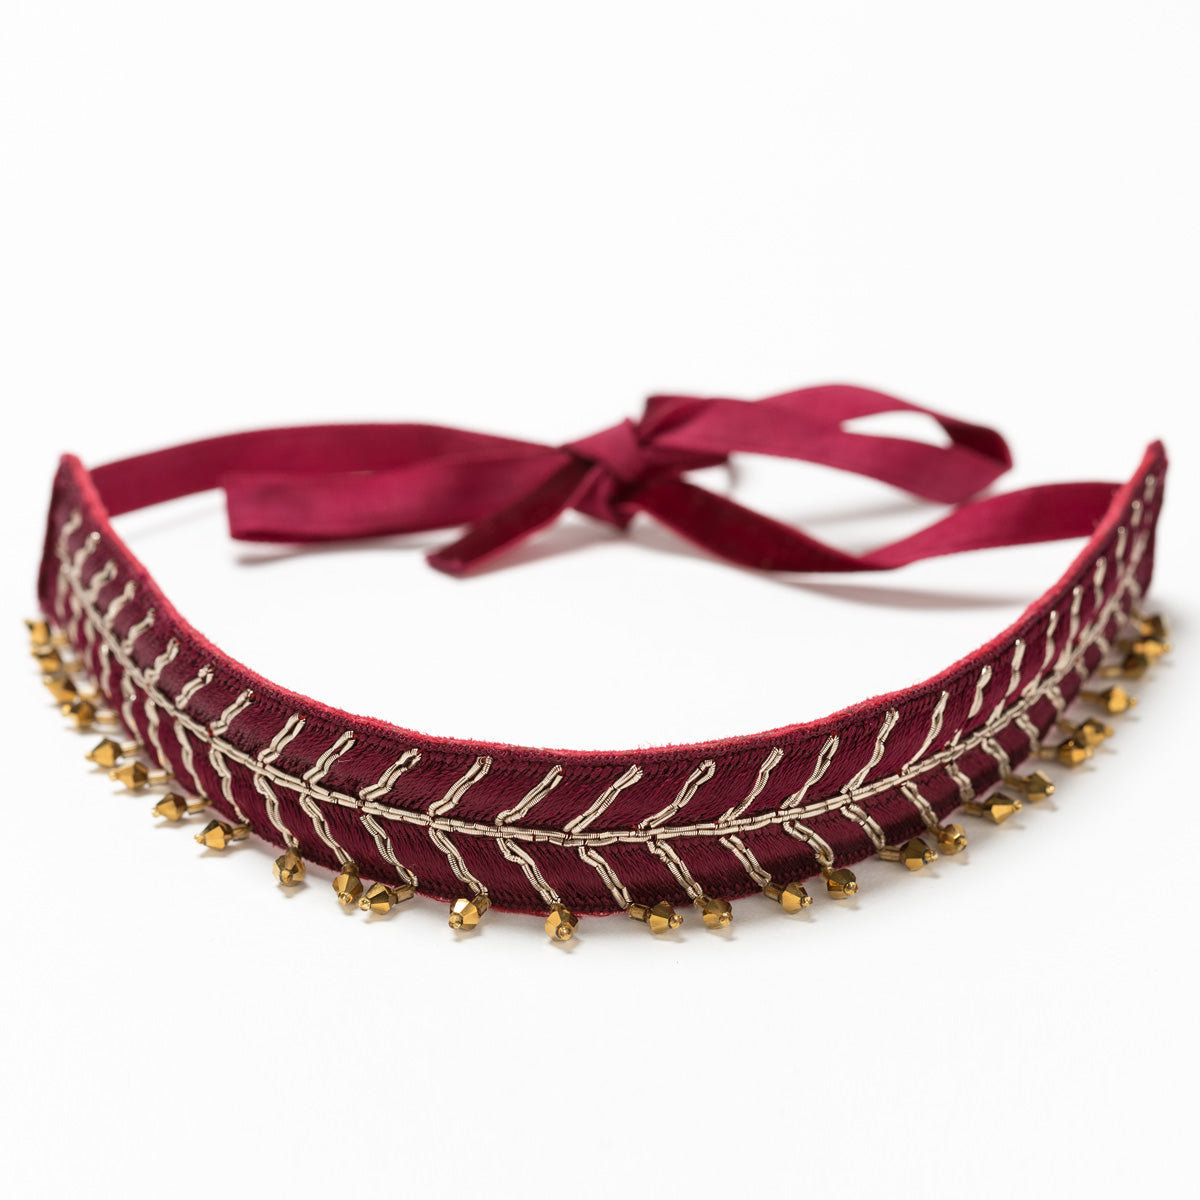 Lori Weitzner Vega Necklace, Choker with embroidery, beading, and velvet ties